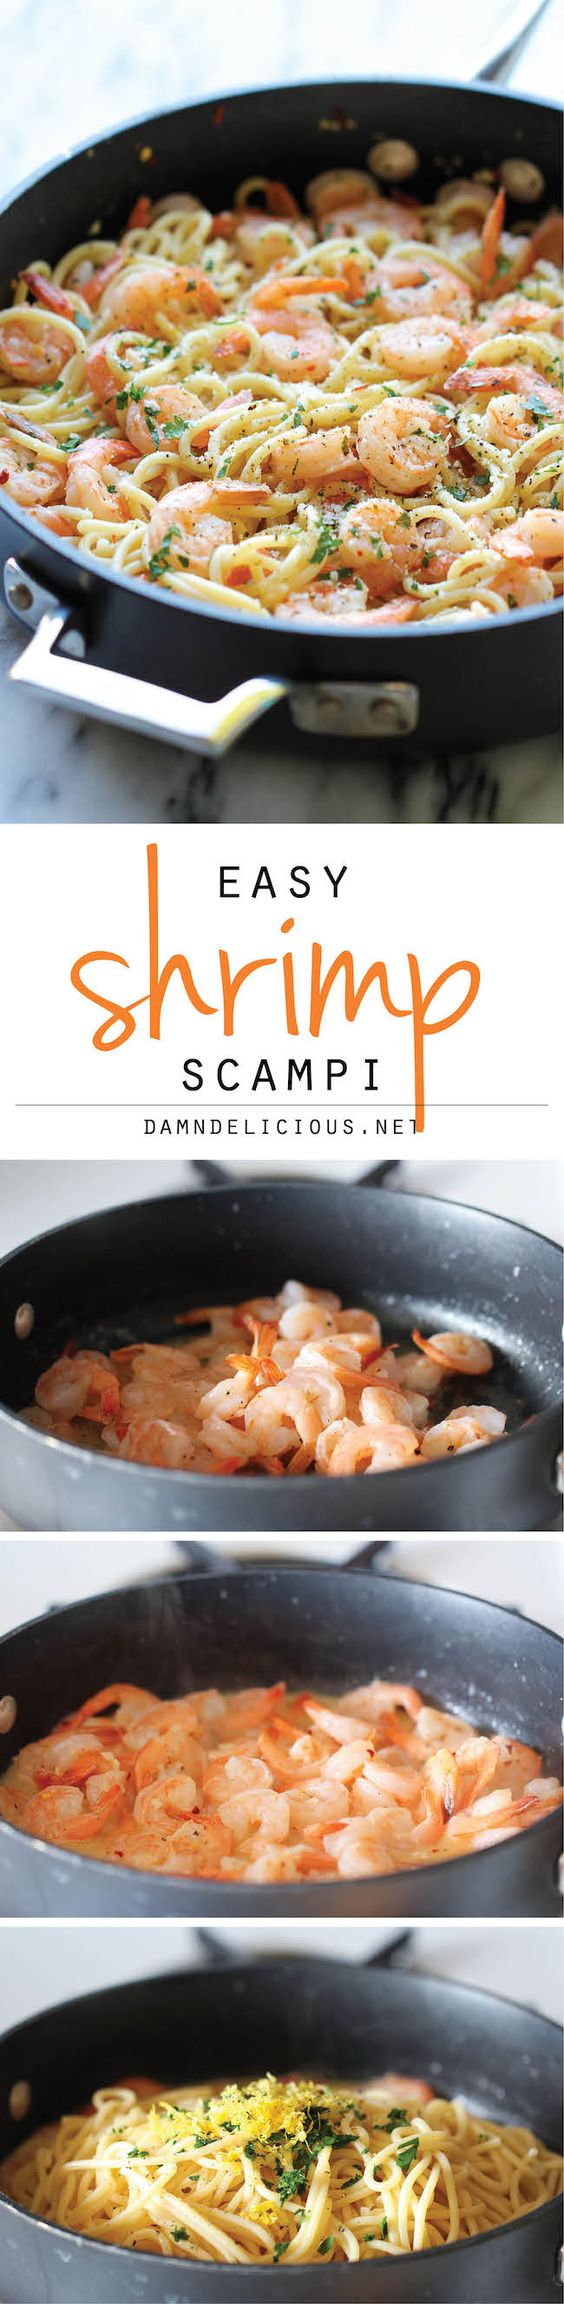 Shrimp Scampi - You won't believe how easy this comes together in just 15 minutes - perfect for those busy weeknights!